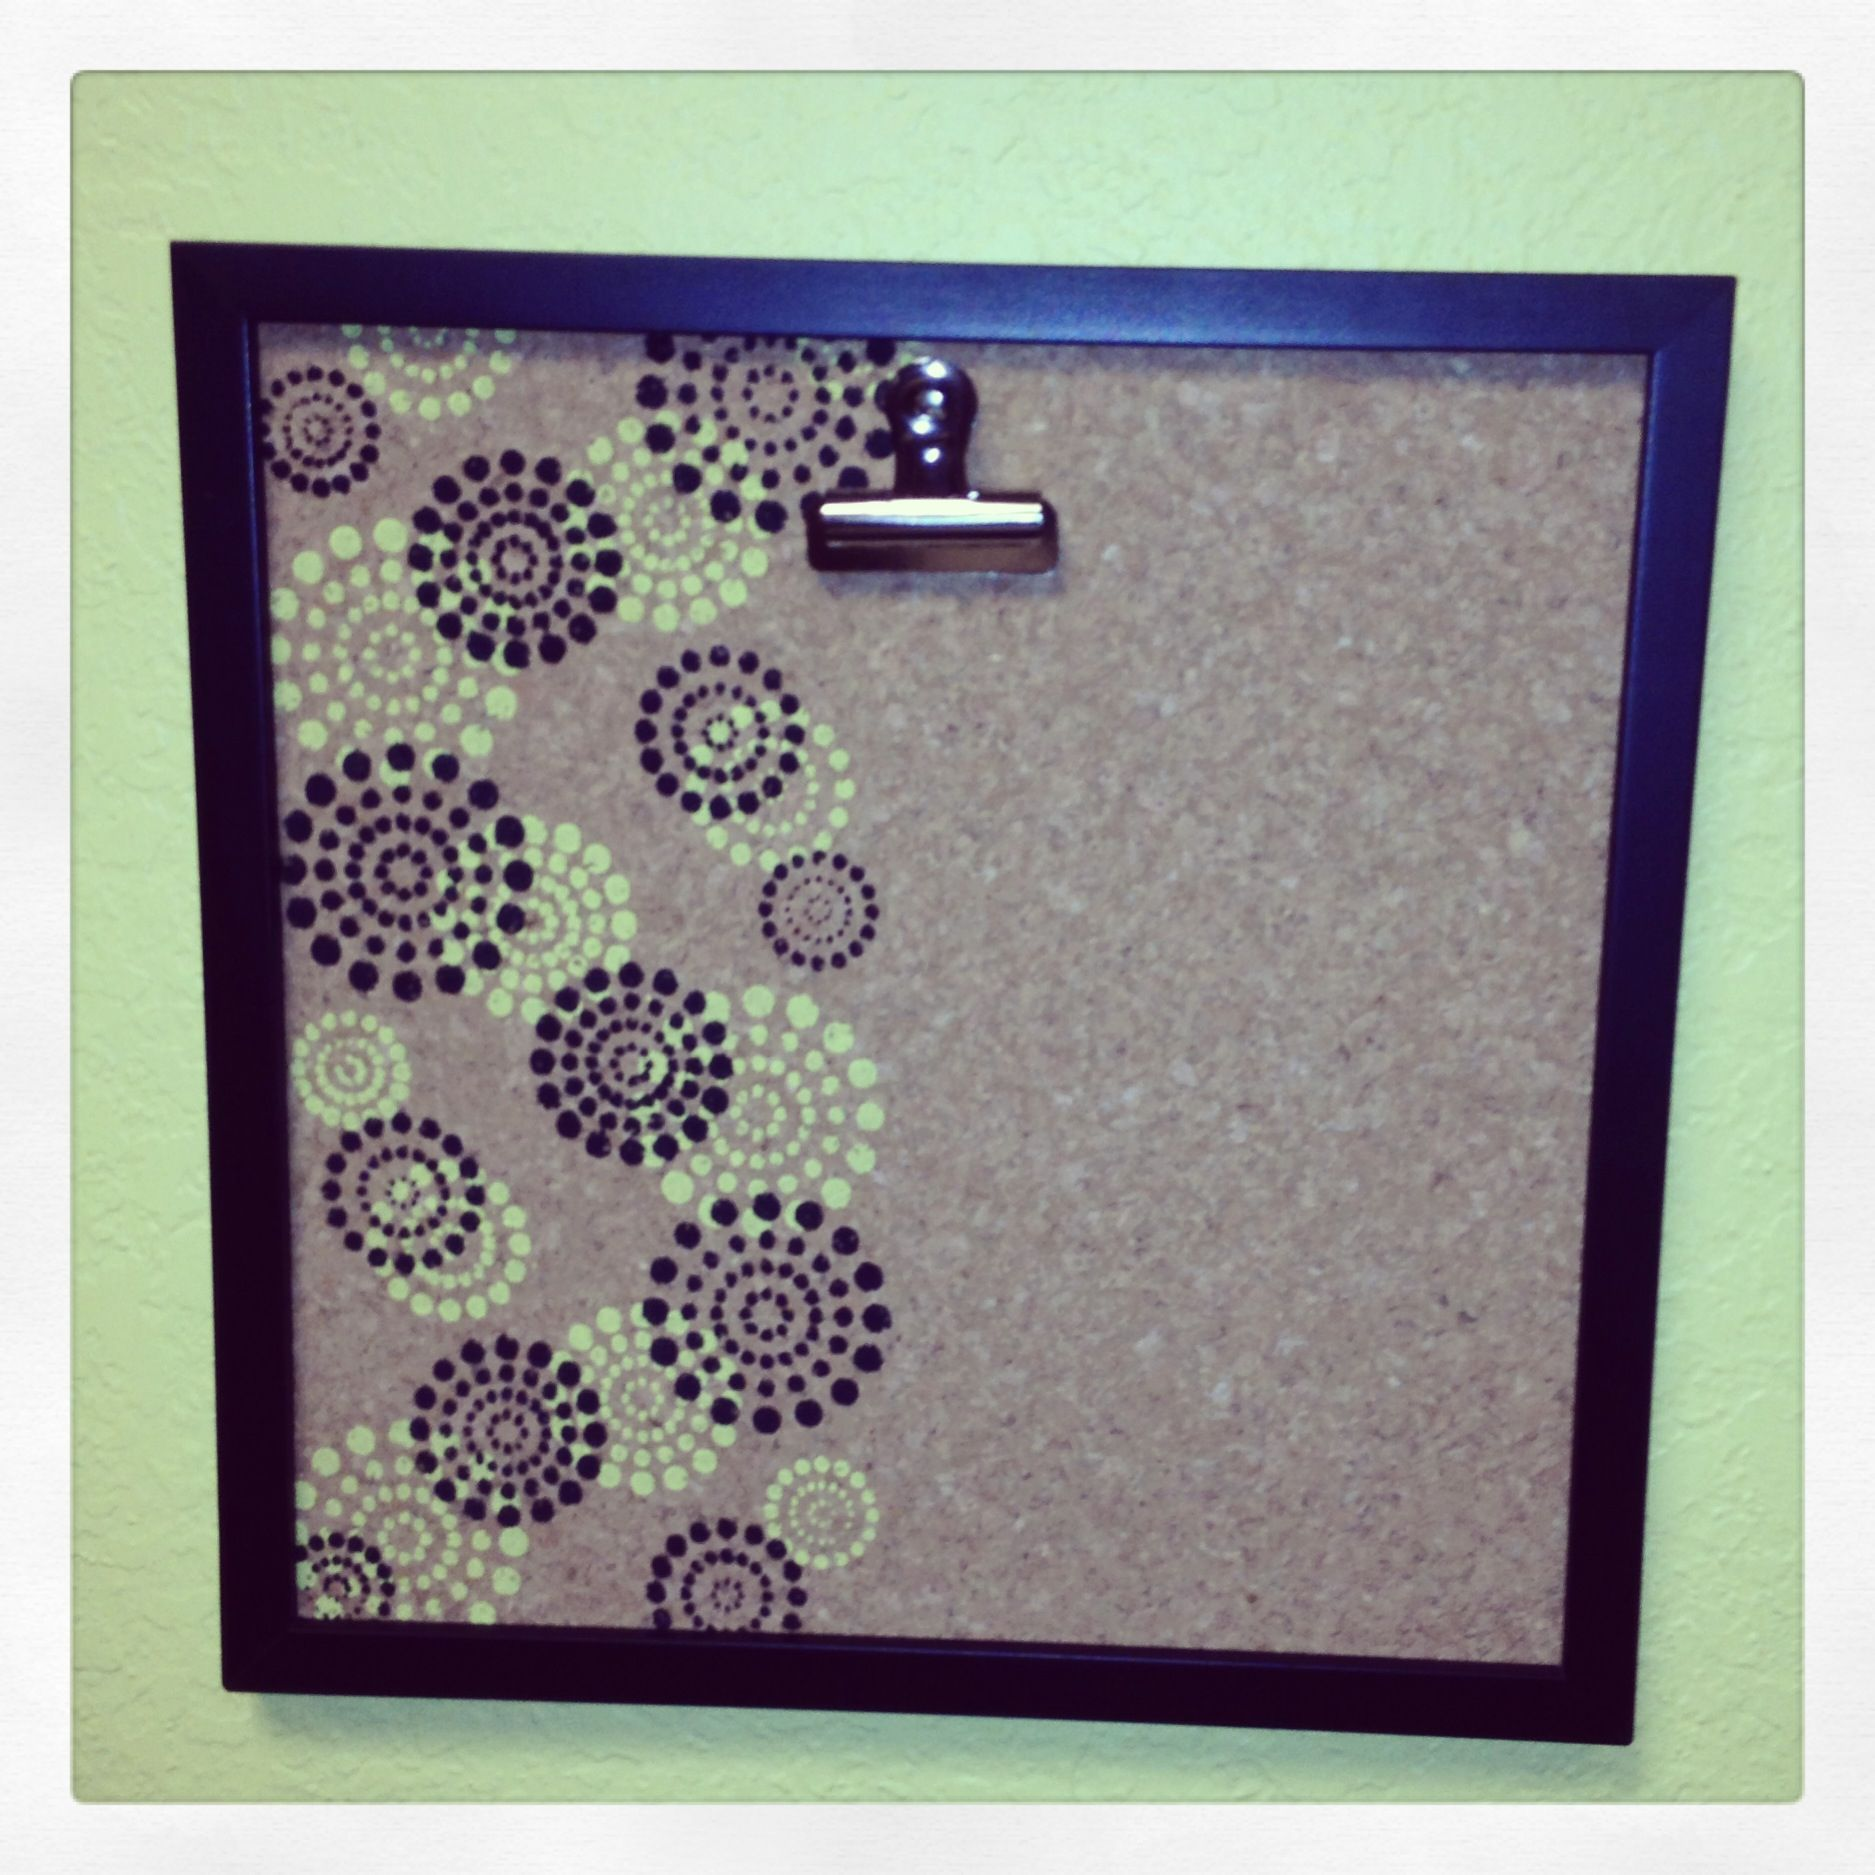 Cheap 12X12 Frame, Cork Board And Stenciled With Two Colors